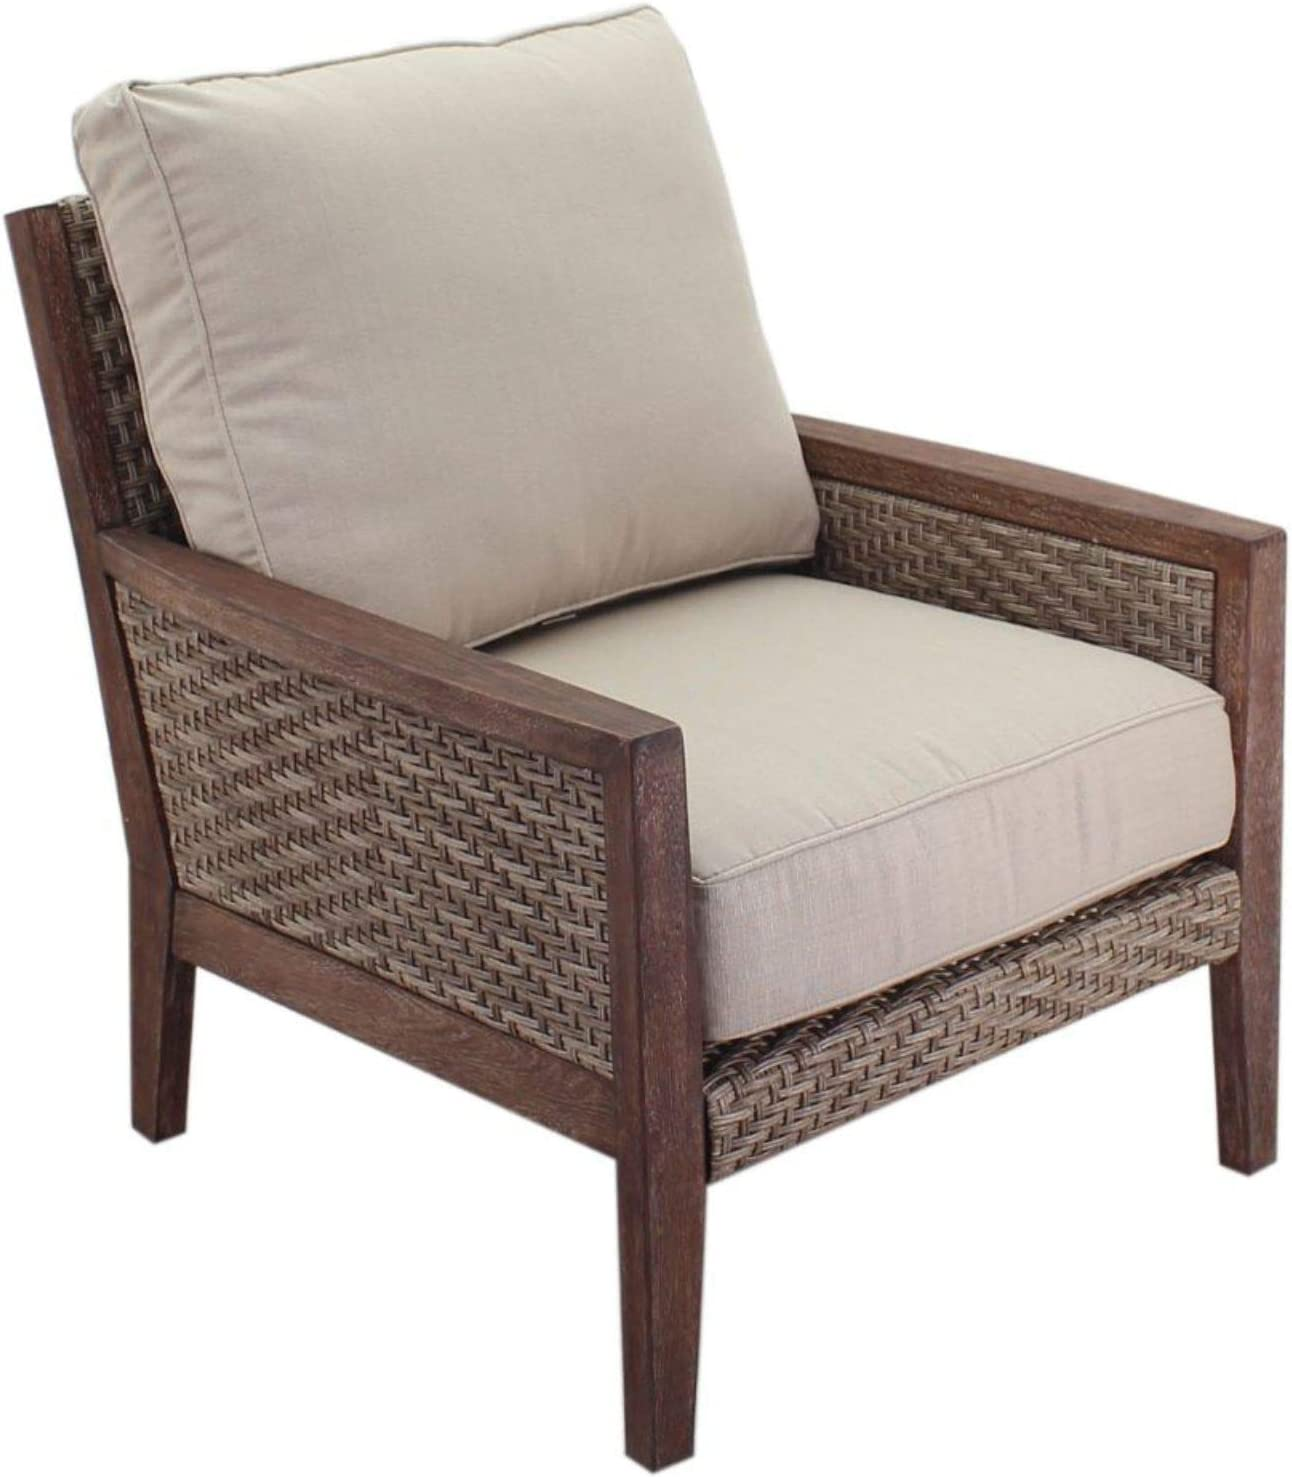 Courtyard Casual 5398 Buena Vista Collection 1 Club Chair, Taupe, Brown